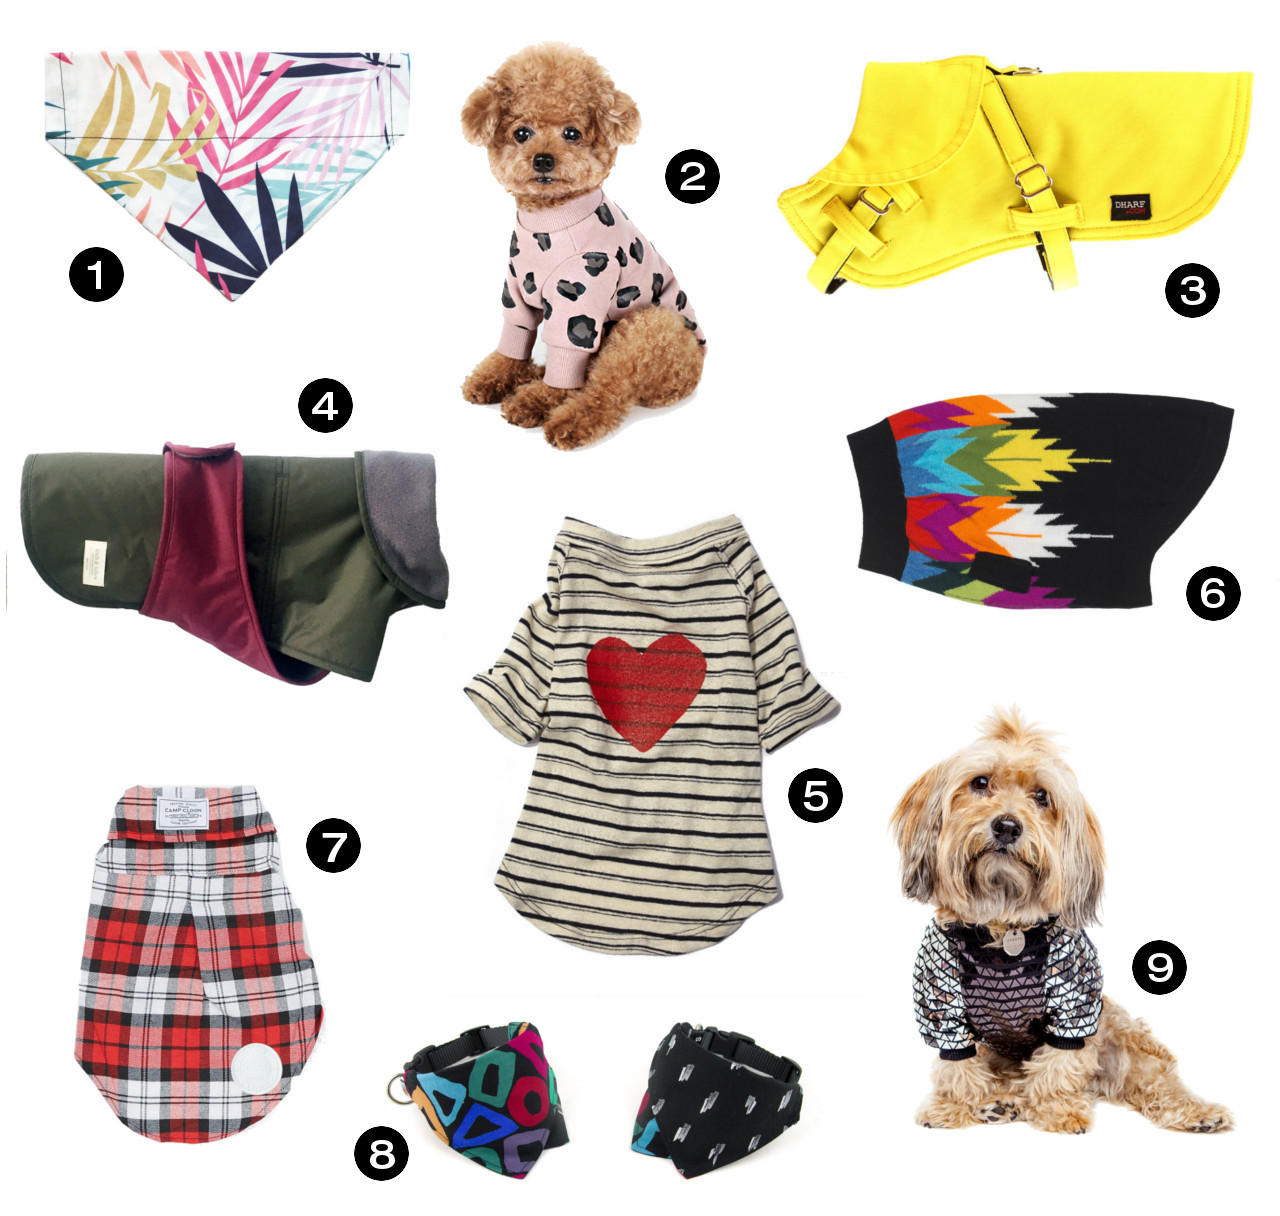 Dog Milk Holiday Gift Guide: 26 Awesome Dog Coats, Sweaters, and More